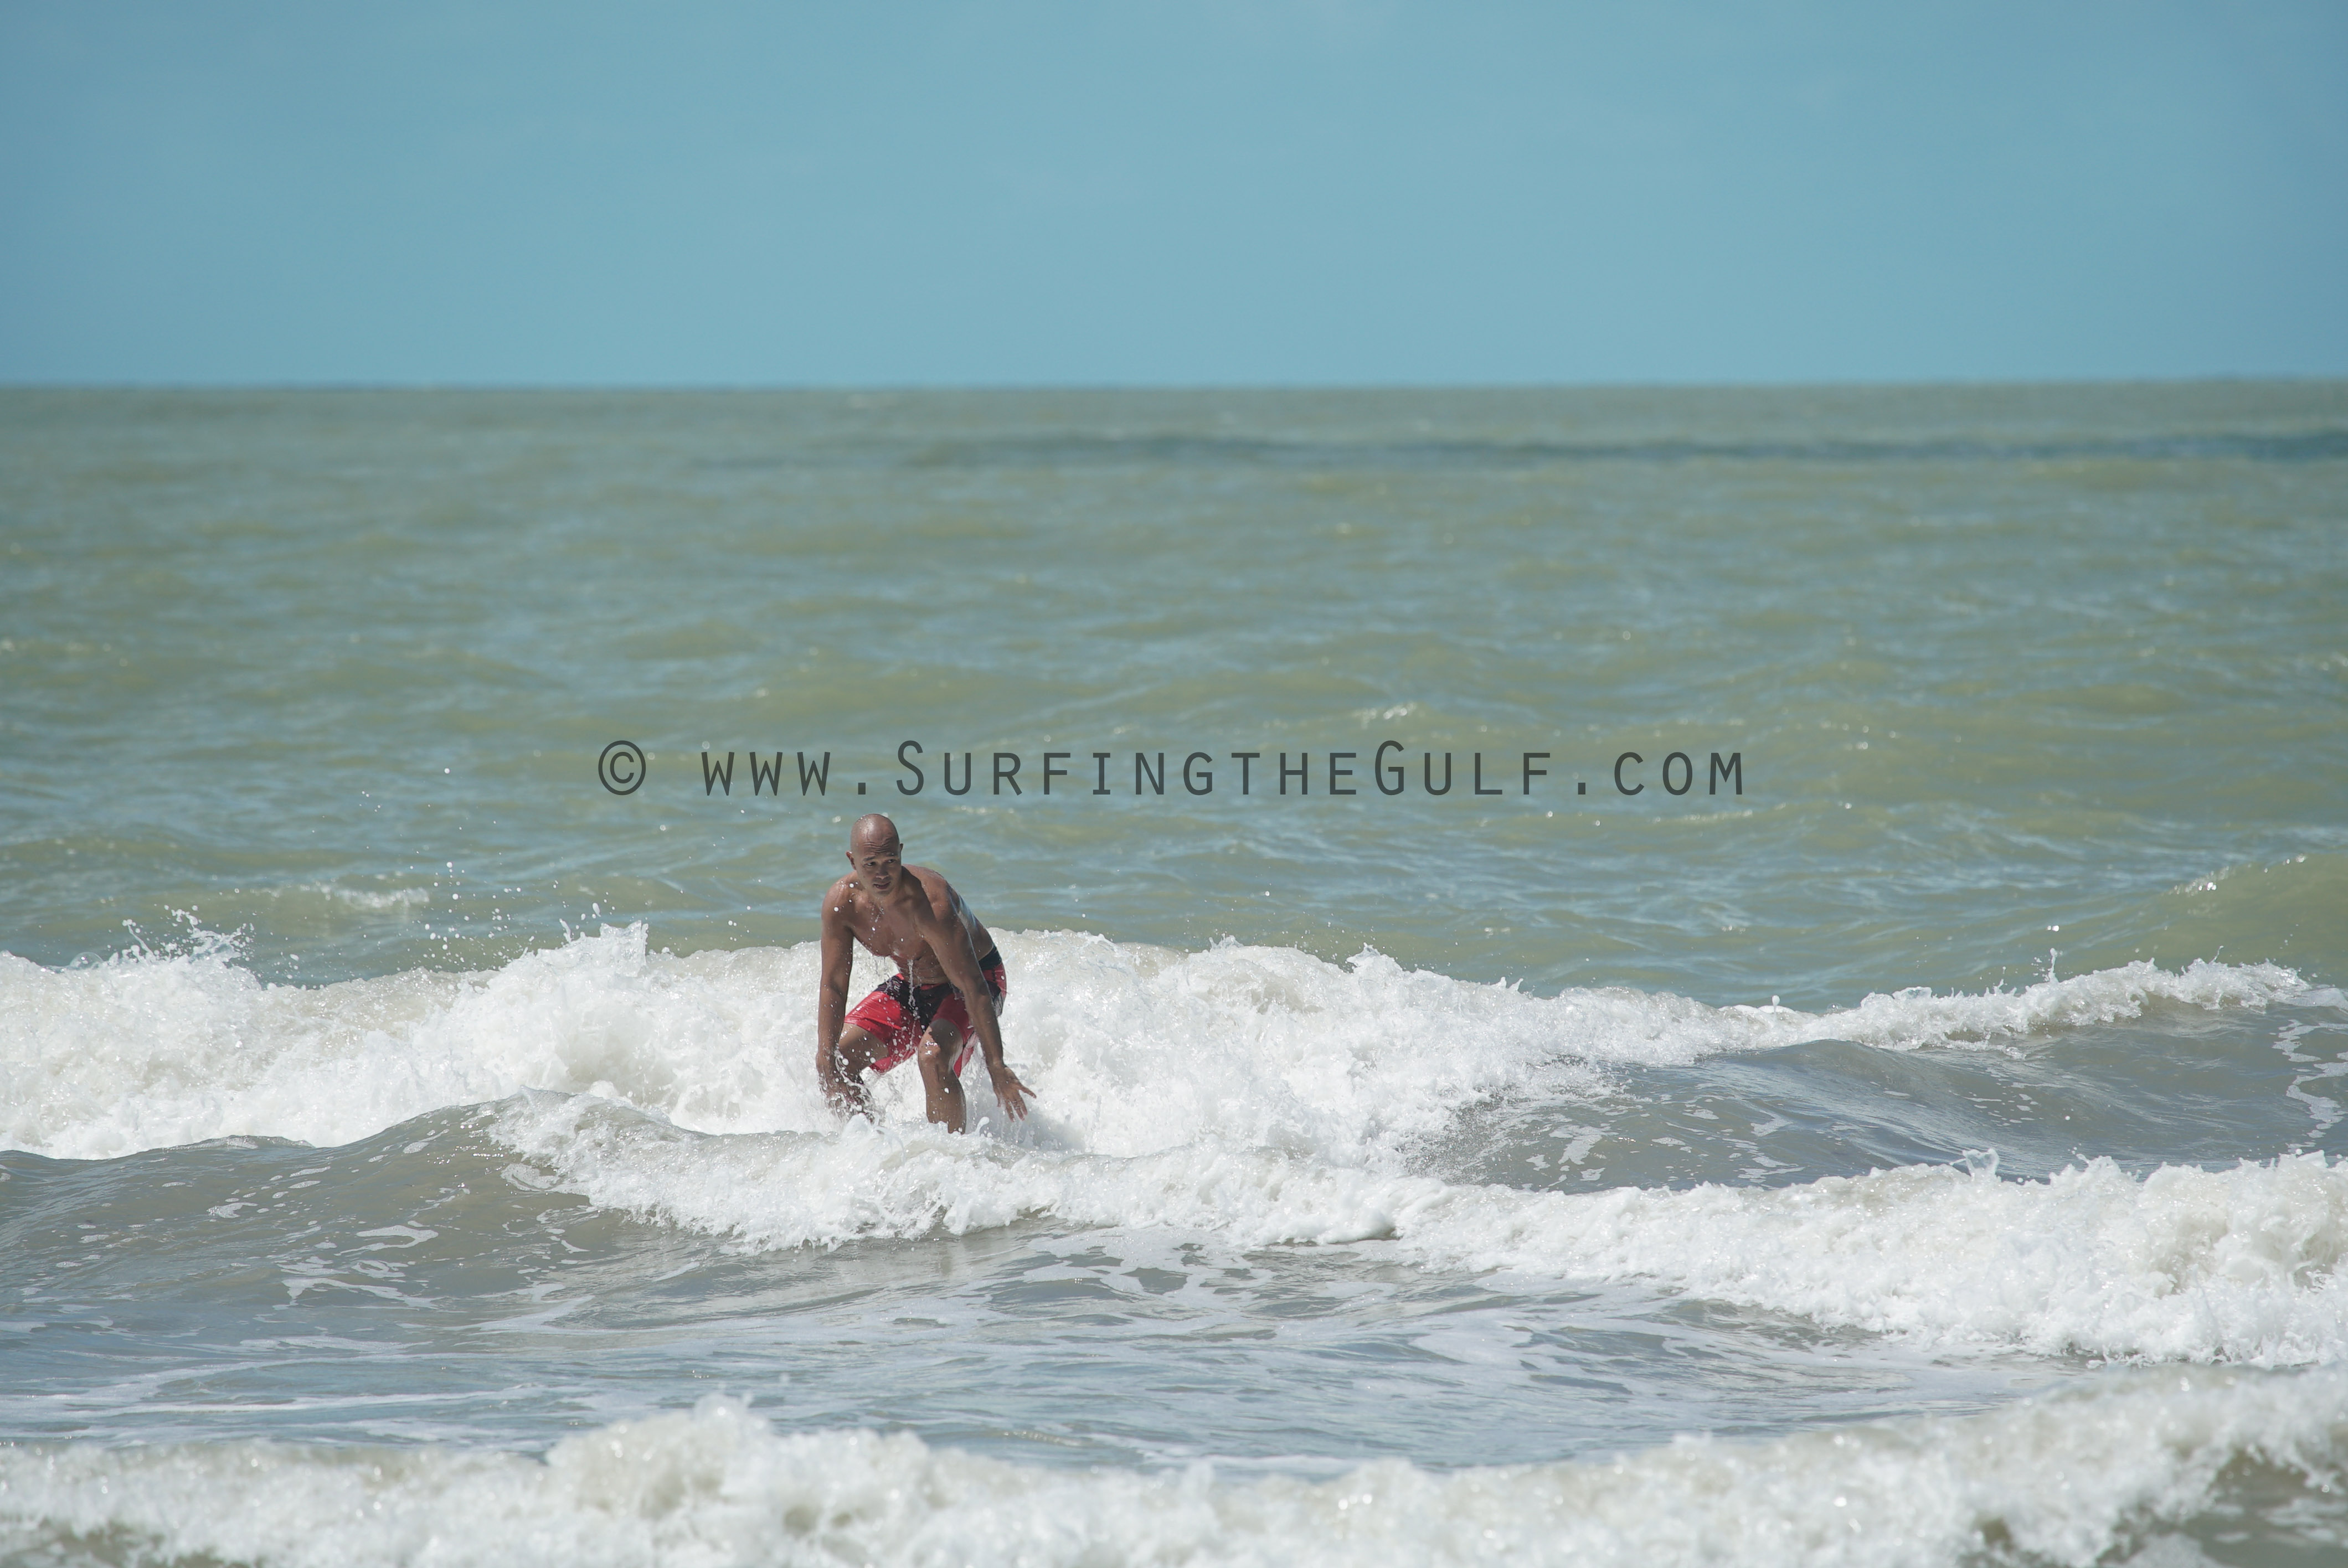 Hurricane irma surf pictures from 880 mandalay avenue www hurricane irma surf pictures from 880 mandalay avenue nvjuhfo Image collections